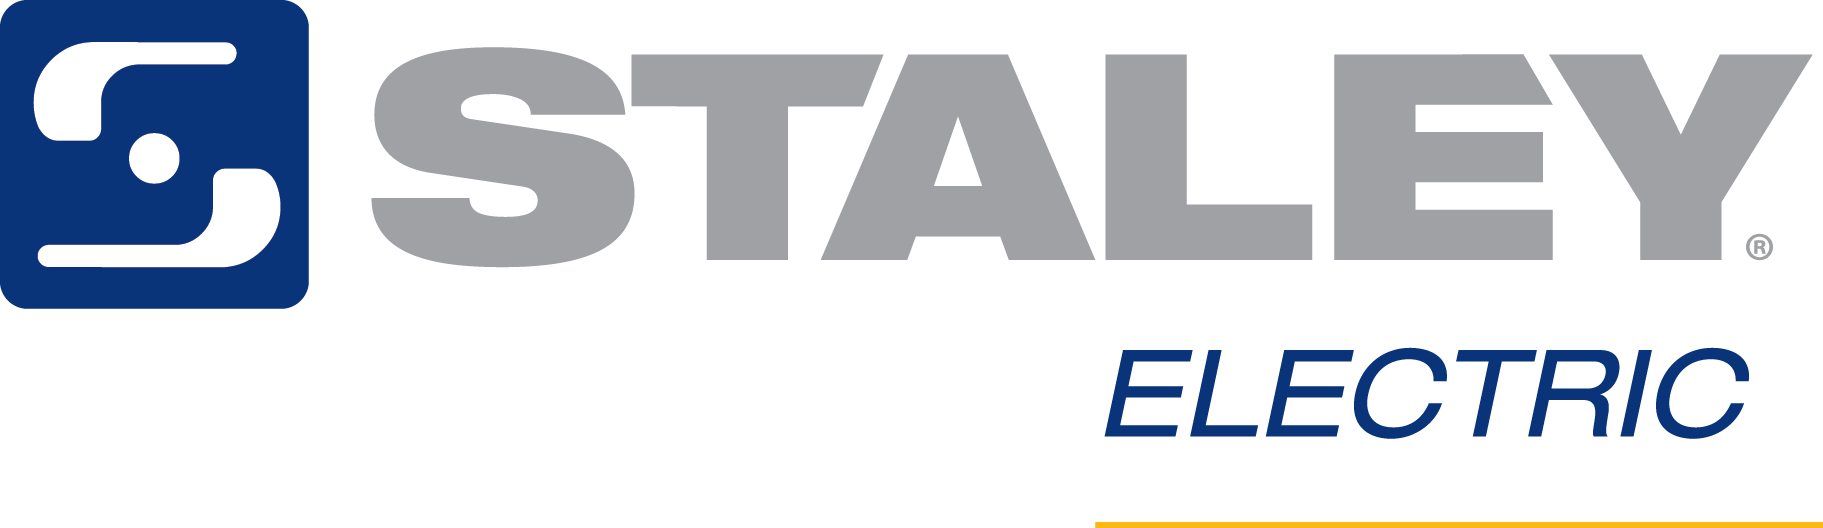 Staley Electric Color Logo.png